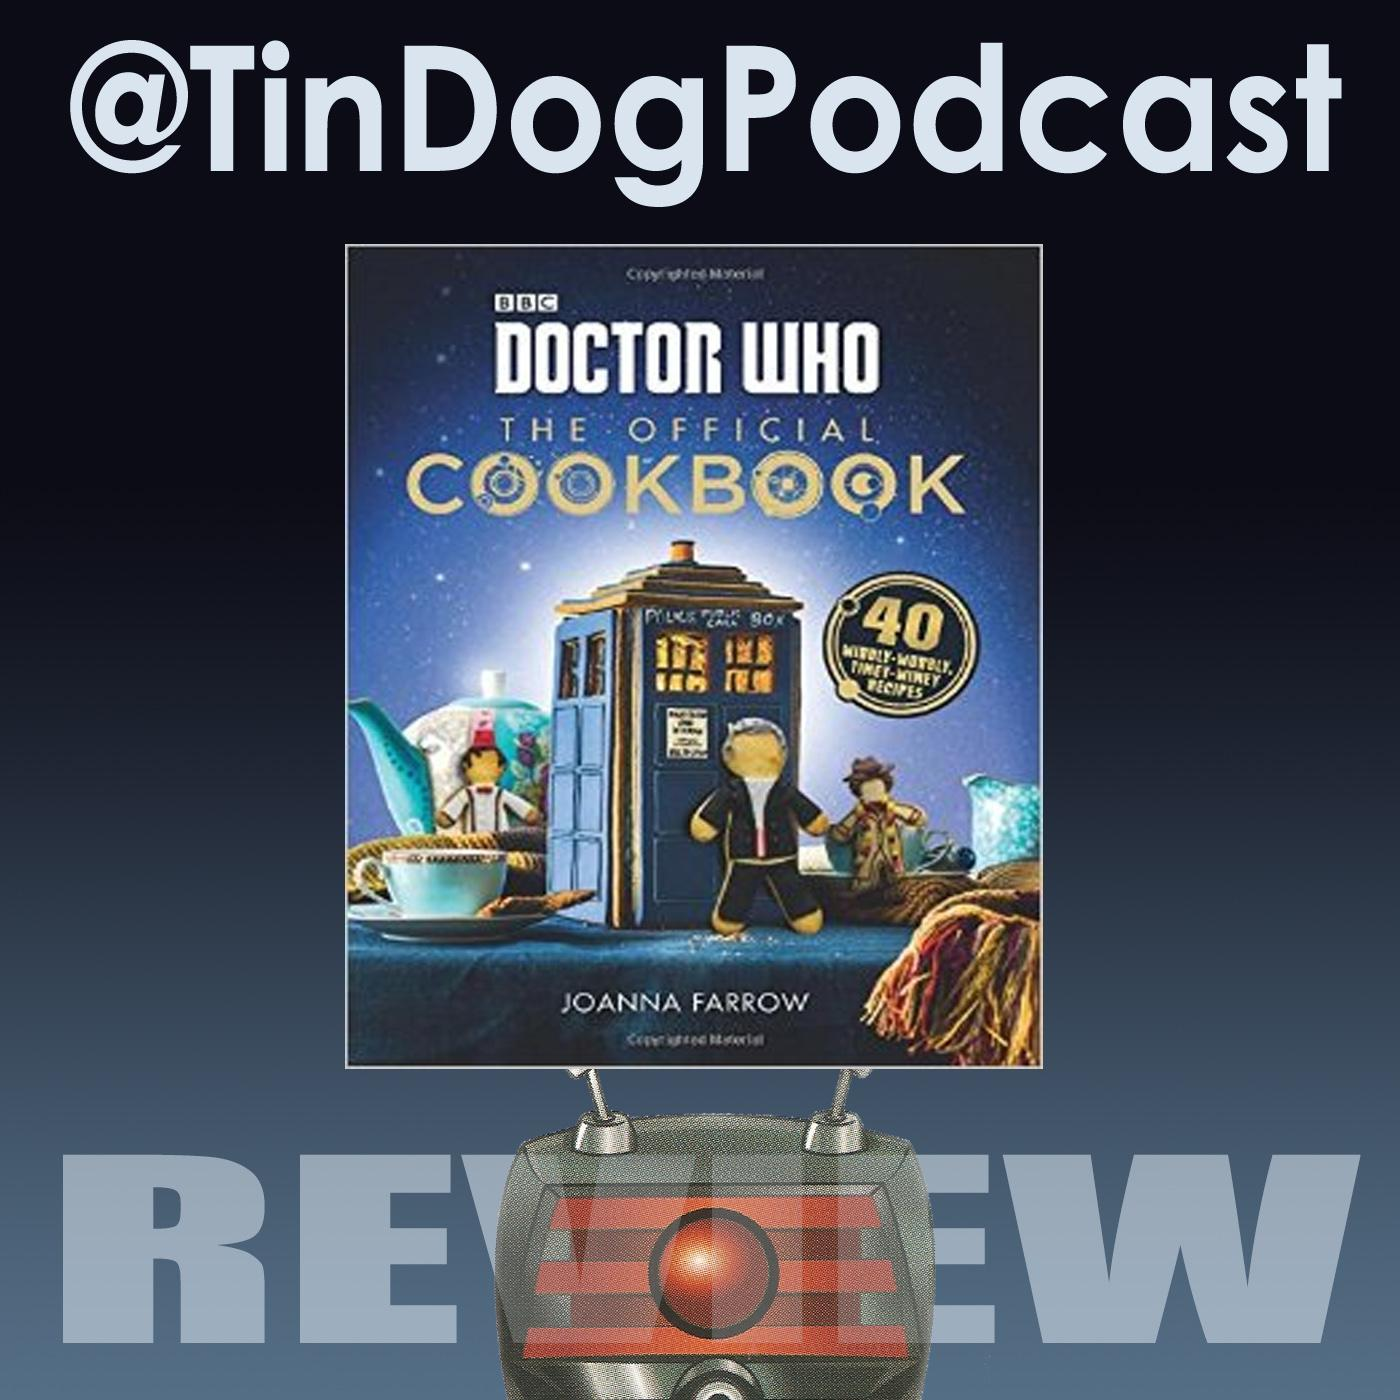 TDP 621: Doctor Who: The Official Cookbook: 40 Wibbly-Wobbly Timey-Wimey Recipes